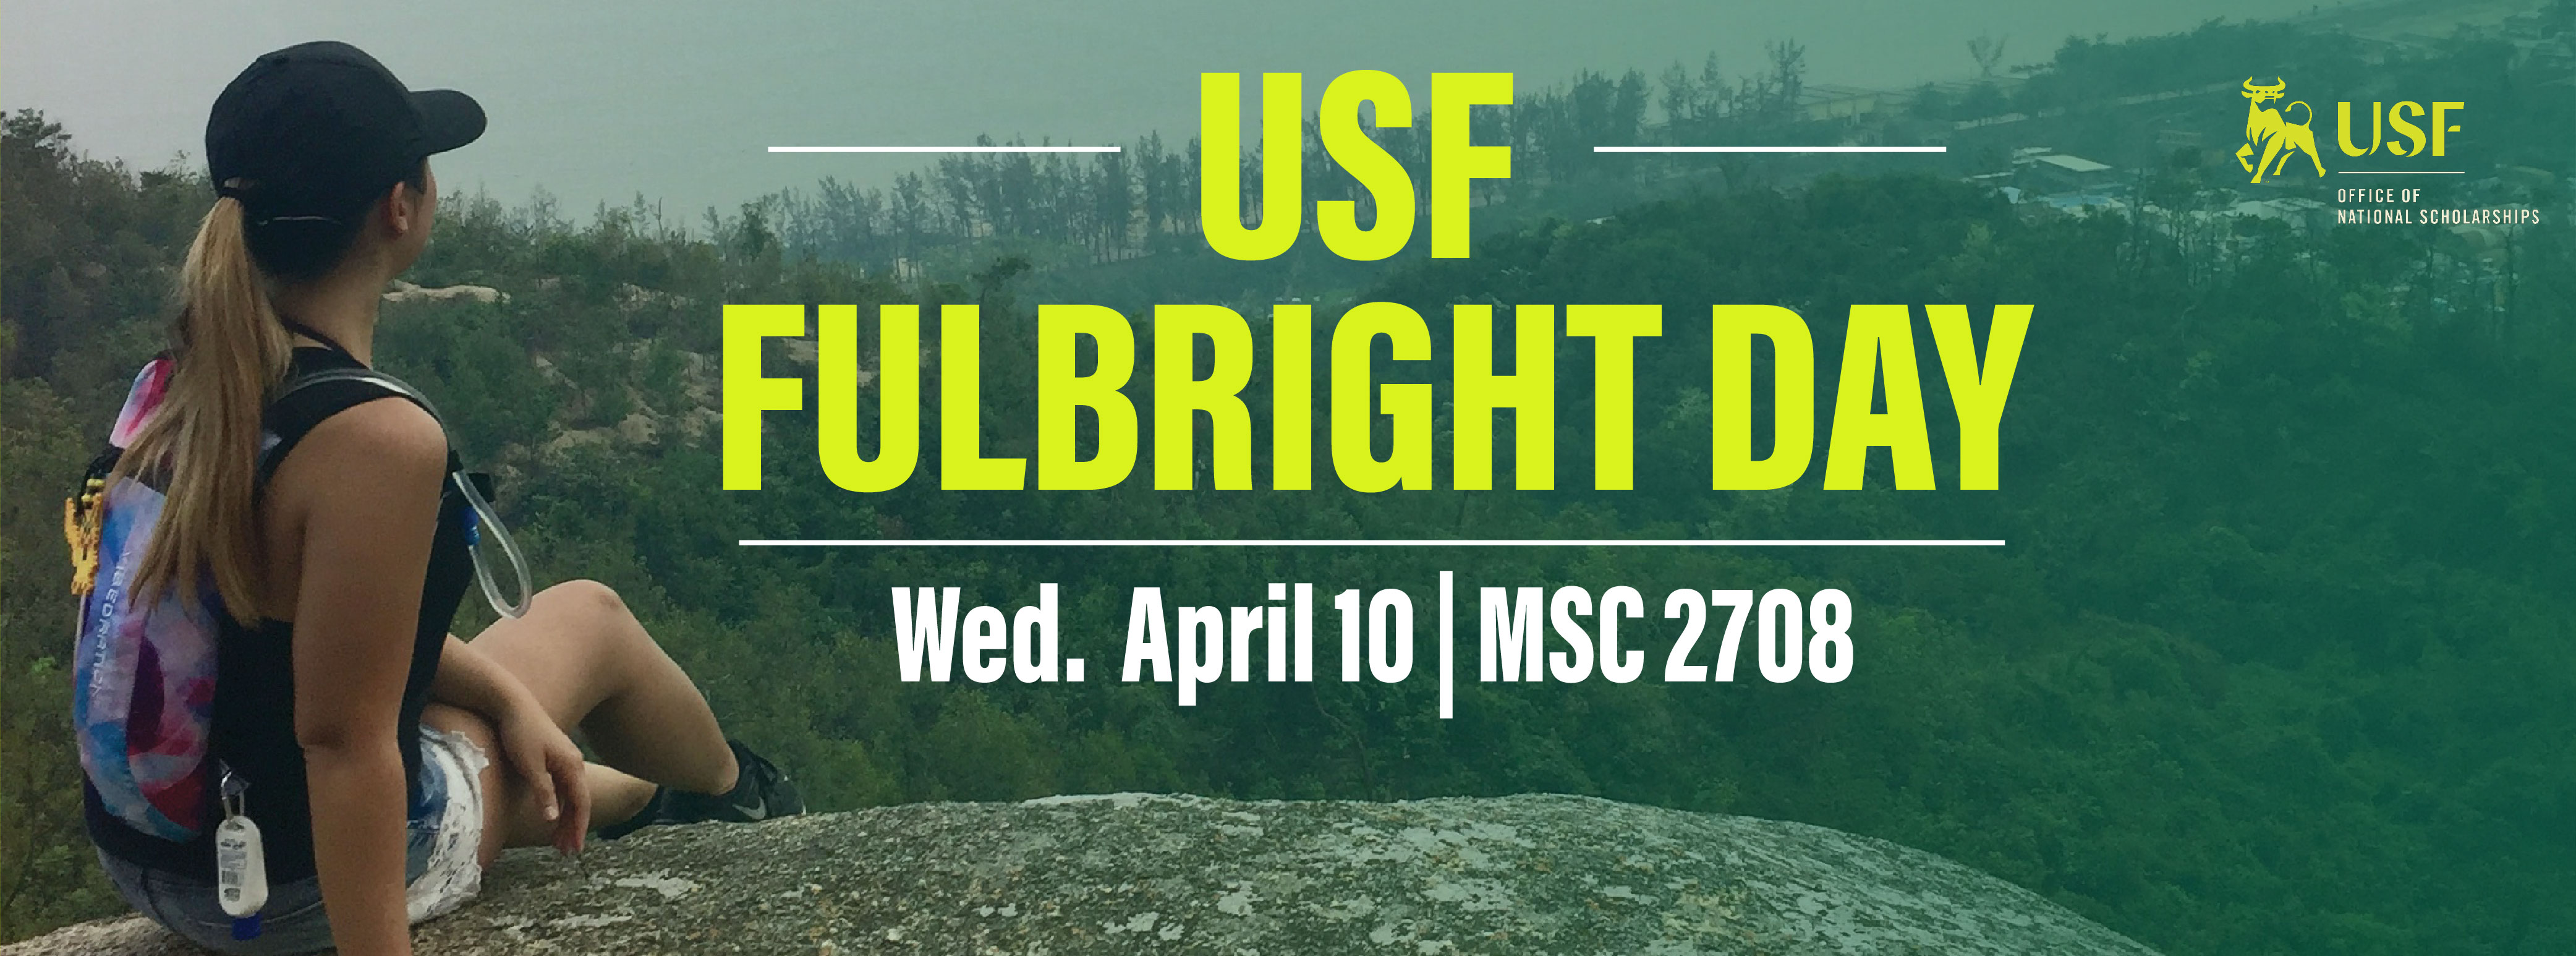 USF Fulbright Day is April 10, 2019!